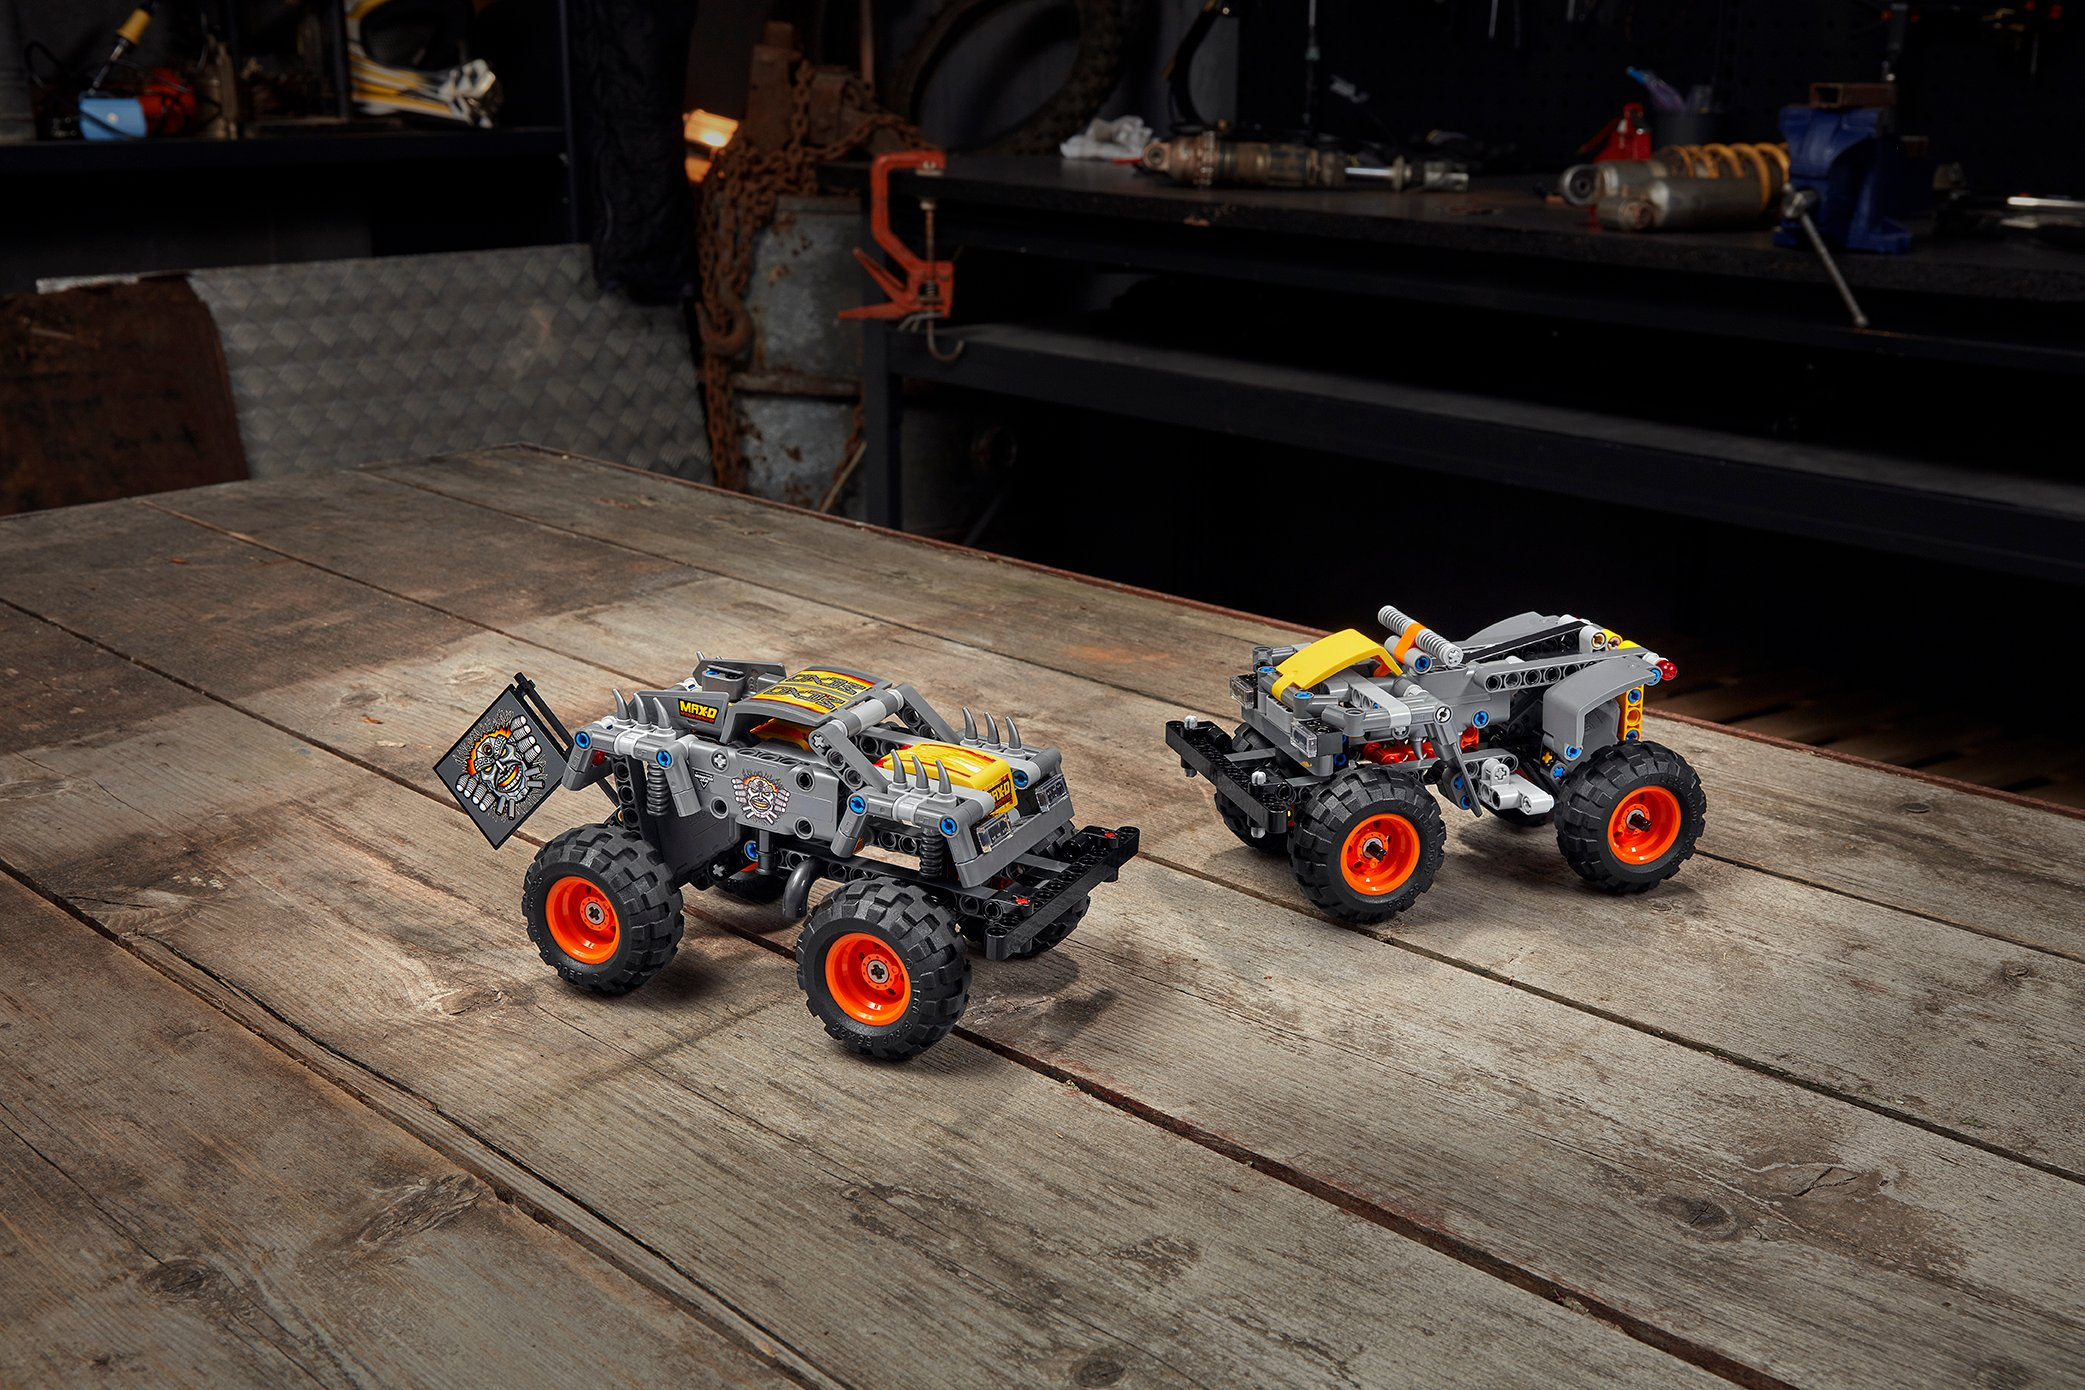 LEGO Technic Monster Jam series gets two new monster truck replicas 14